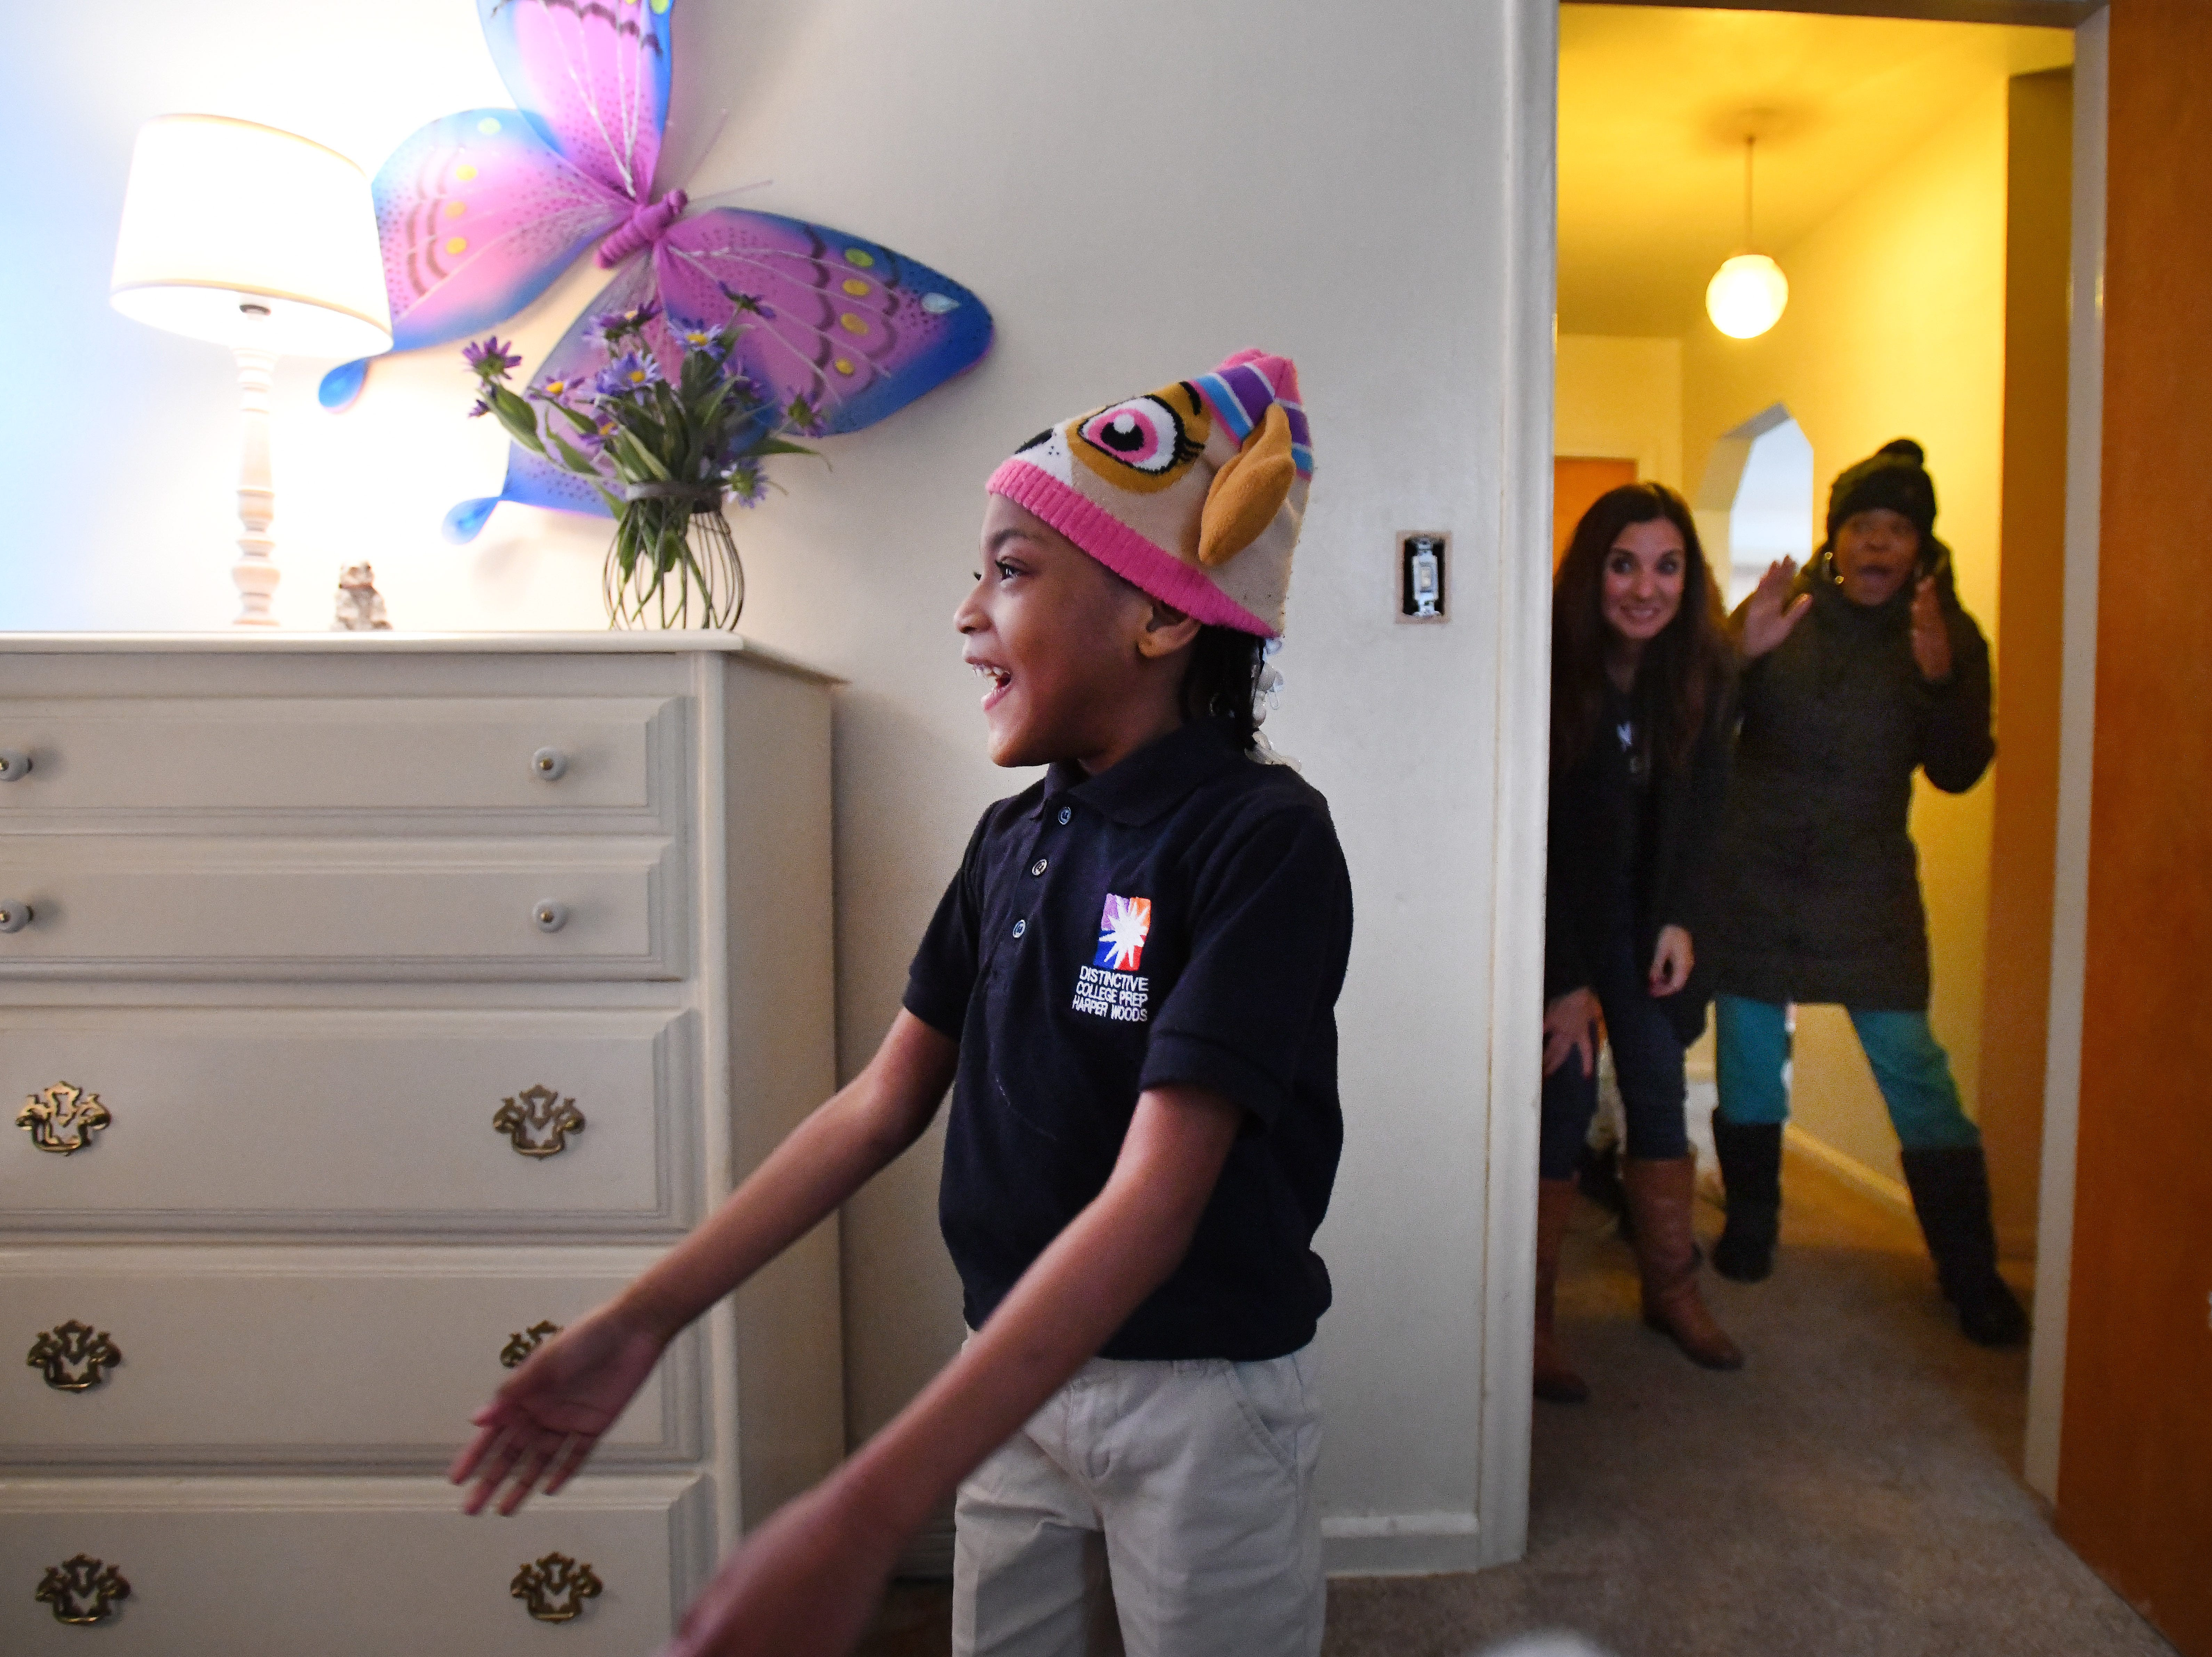 Seven-year-old Ja'Kayla Powers-McCoy reacts with delight as she enters her newly decorated room full of pink and purple, as Humble Design CEO and Co-founder Treger Strasberg and Ja'Kayla's mother Jamiliah Powers-McCoy watch from the hallway.